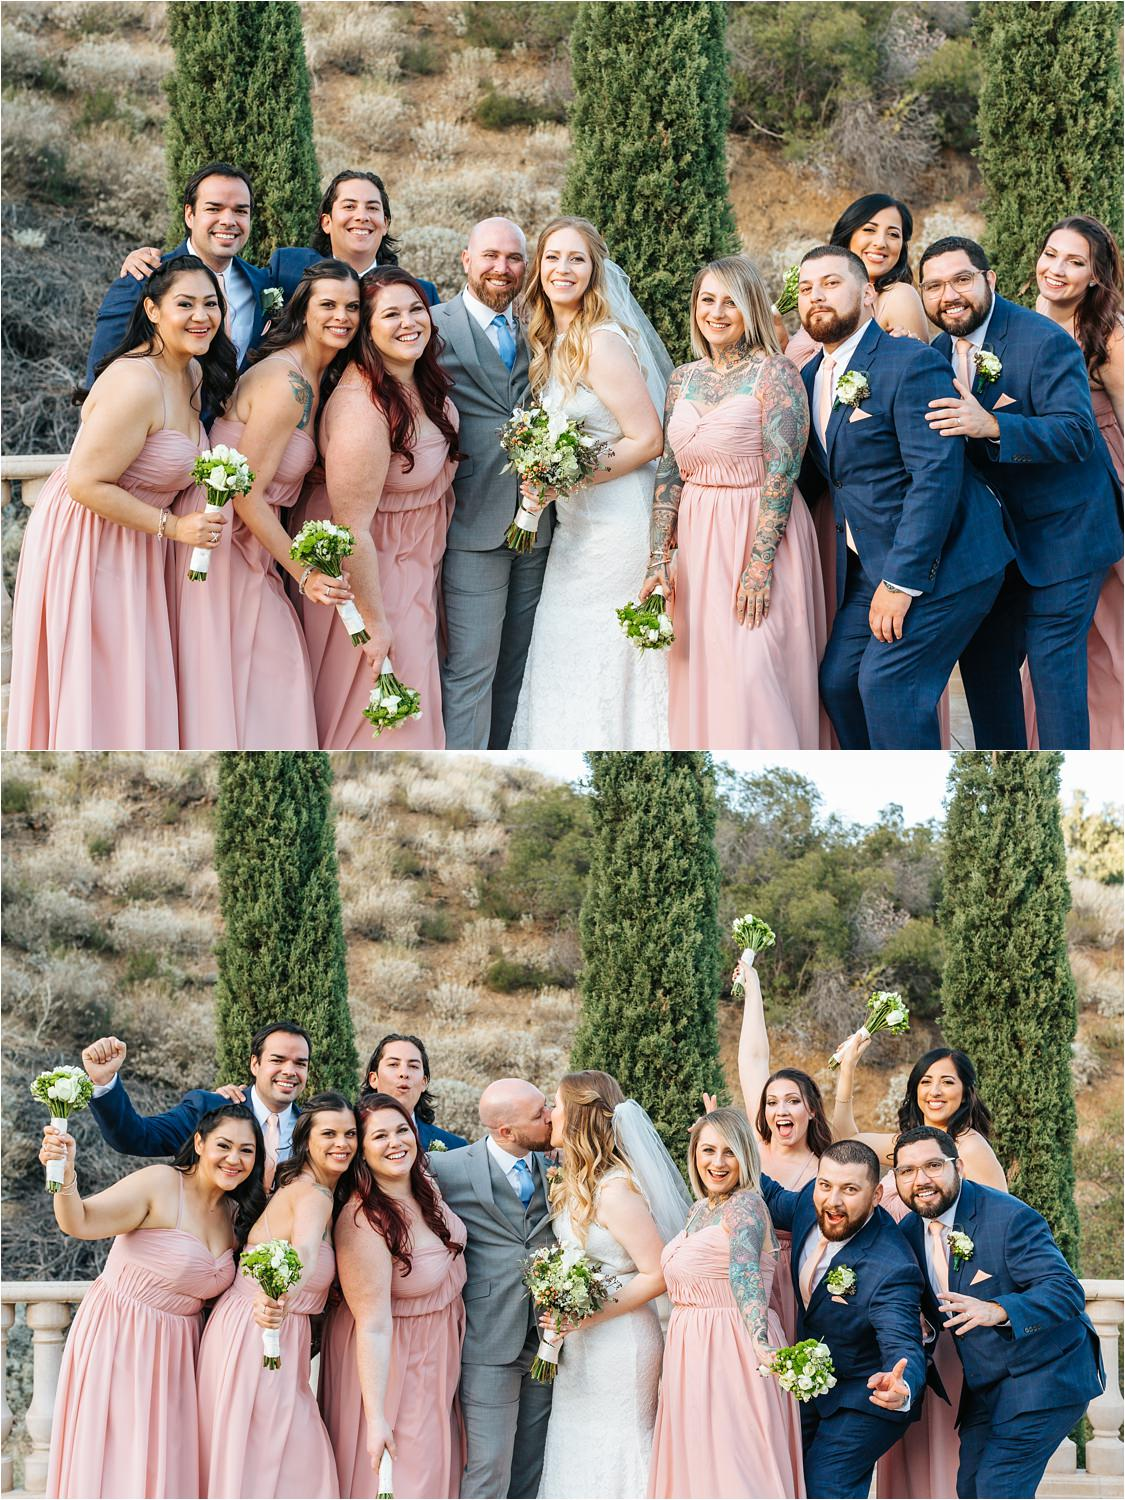 Super cute wedding party photo with the bride and groom - https://brittneyhannonphotography.com